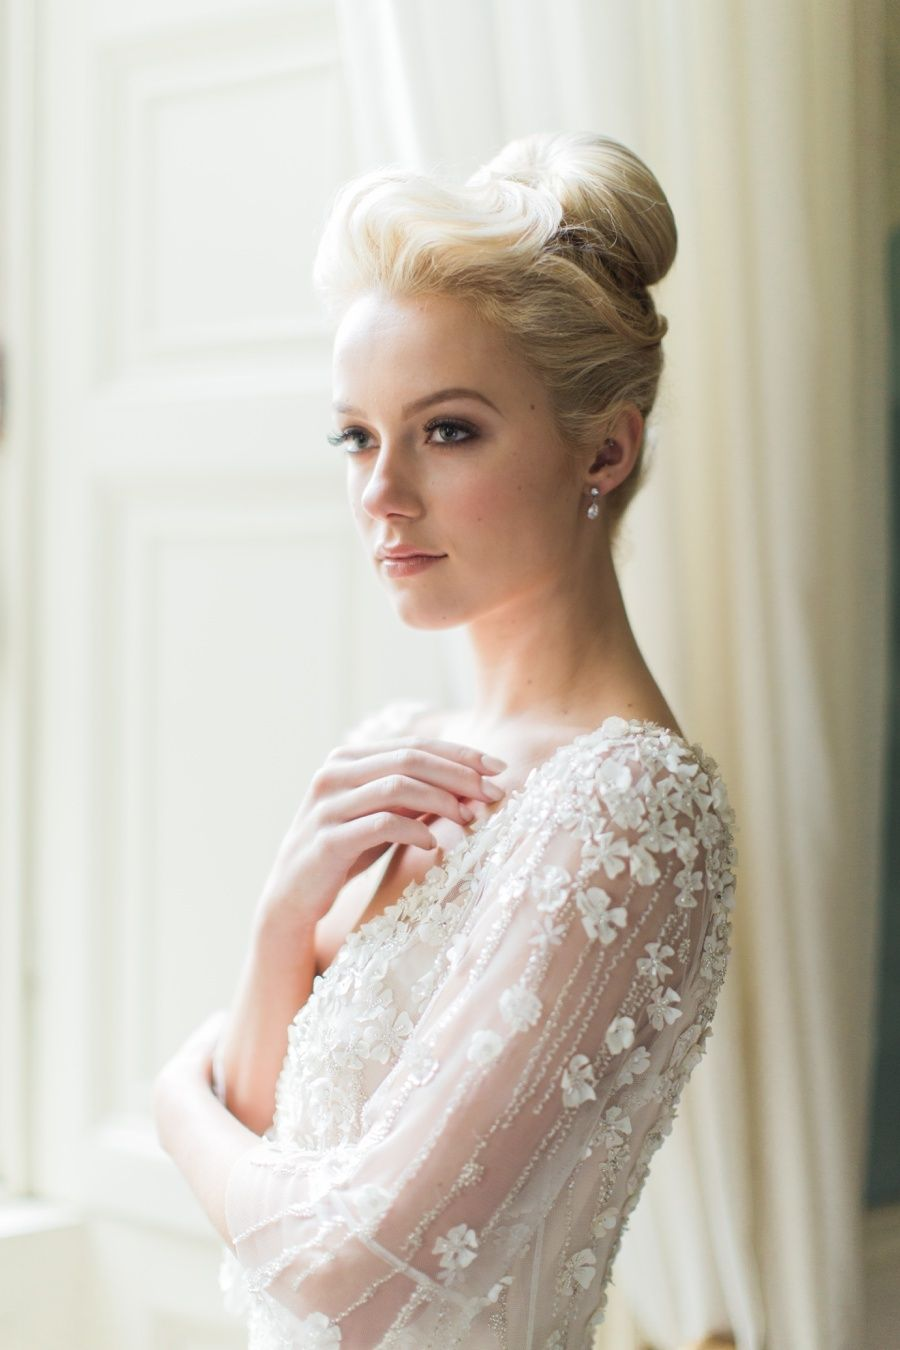 The Best Hairstyles of 2015 | Bridal hairstyle, Destination weddings ...